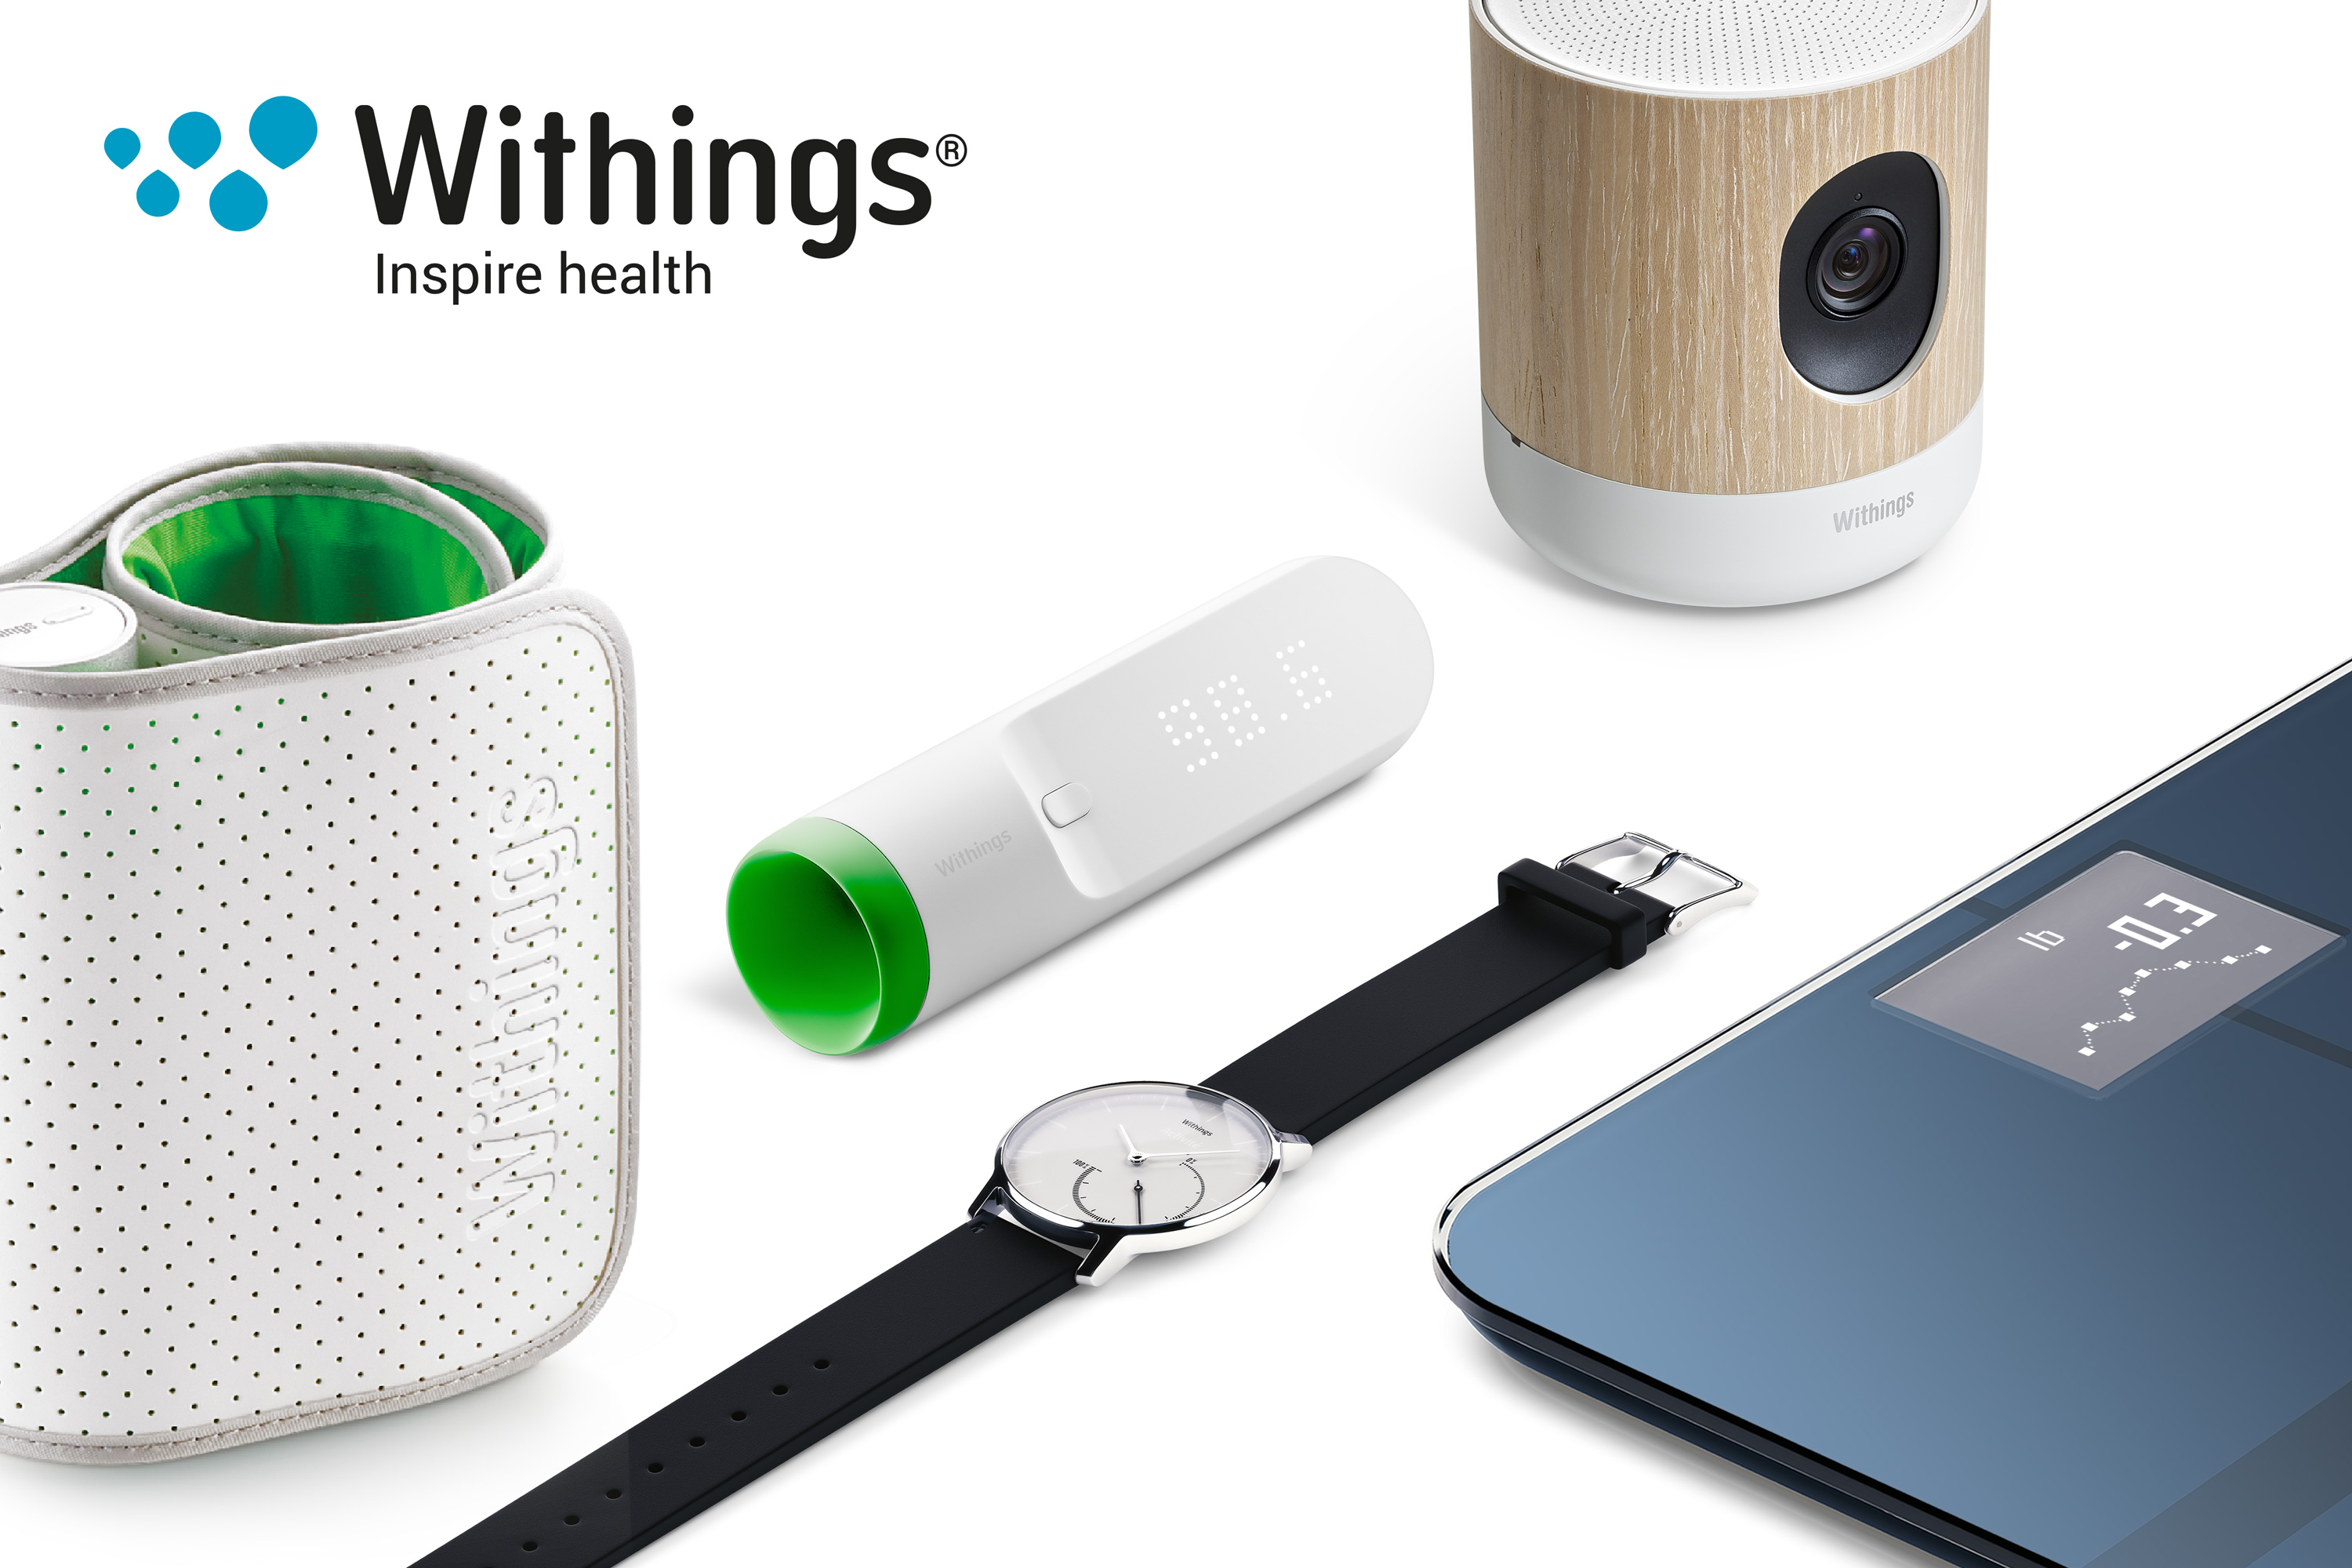 withings-ecosystem